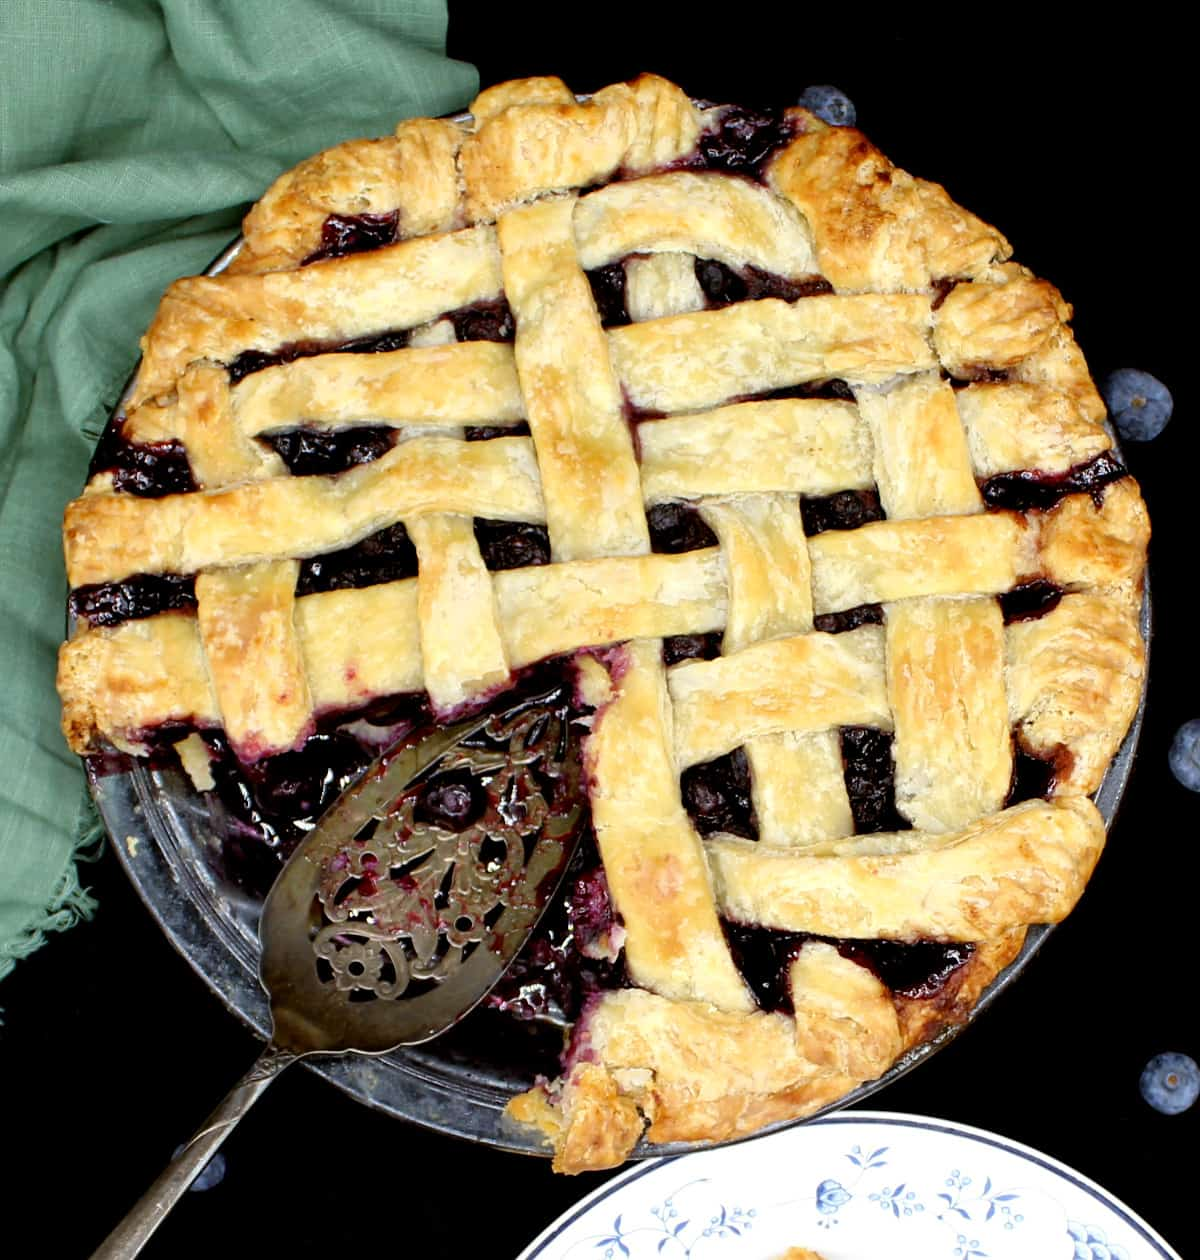 A vegan blueberry pie with a slice cut out and the filling showing with an intricates silver pie server. Blueberries are scattered around and a green napkin lies next to the glass pie plate.